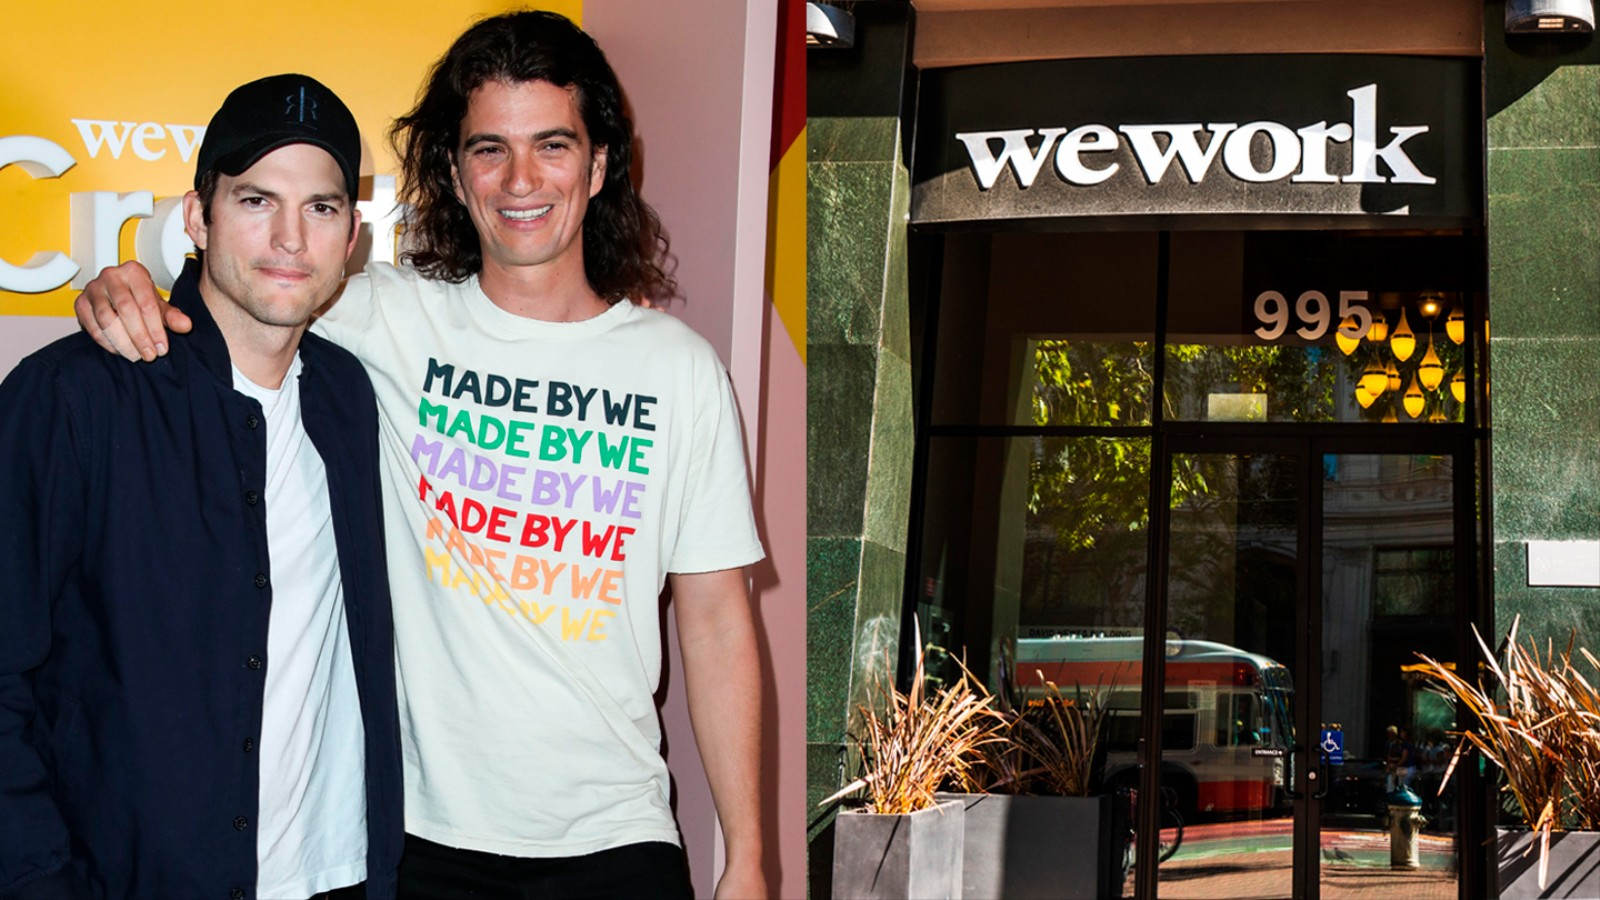 What the Downfall of WeWork Says About Tech Capitalism